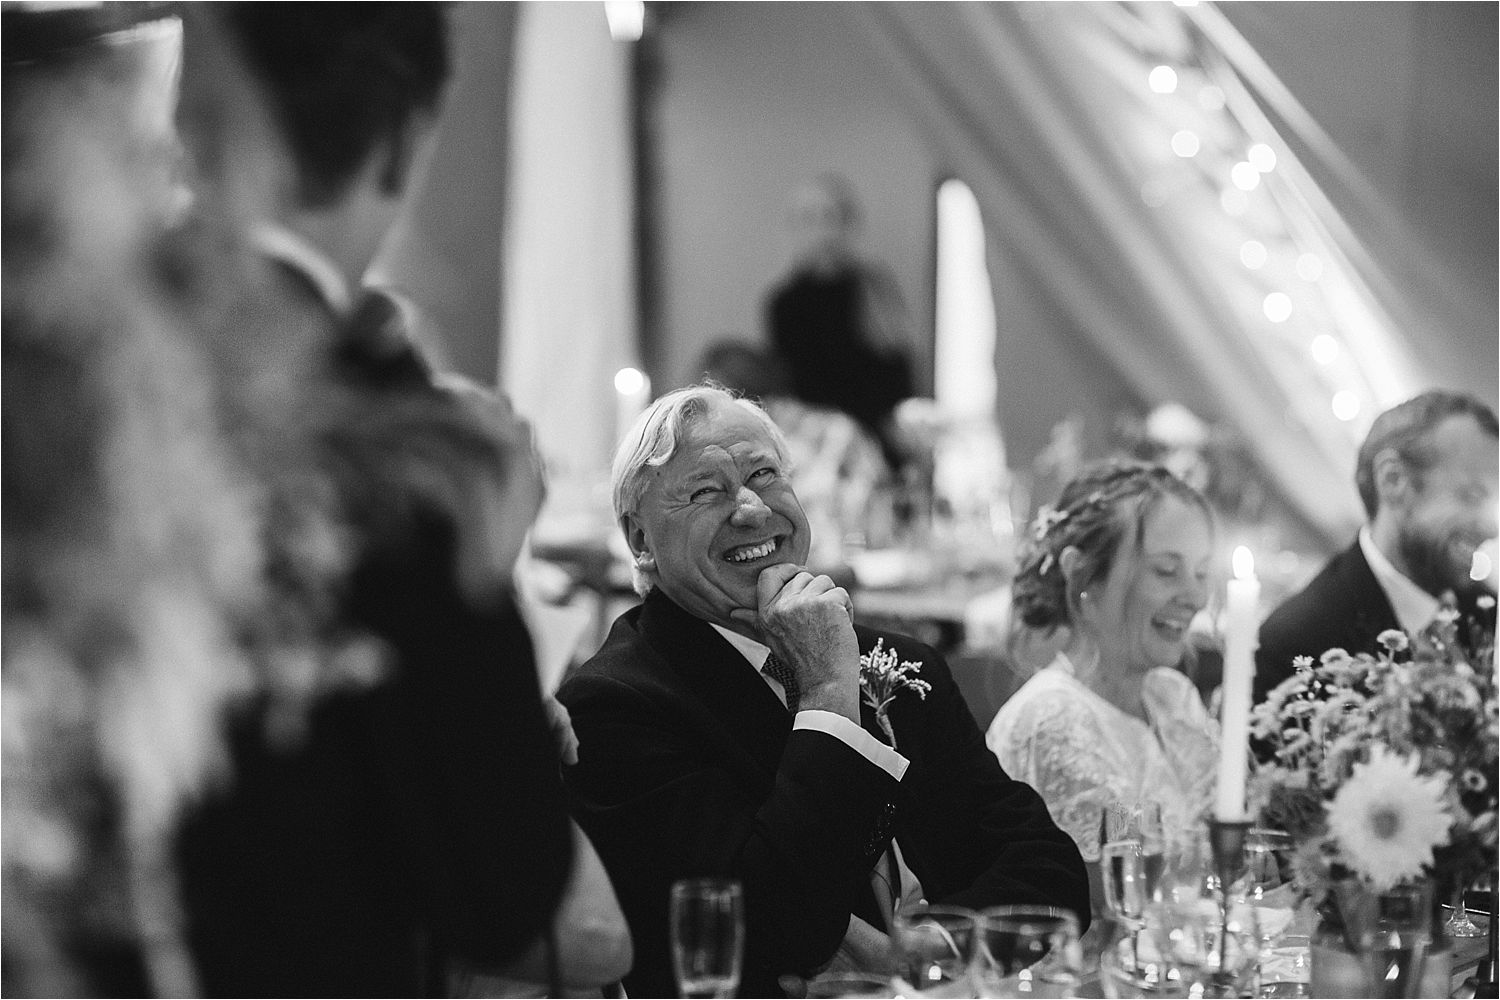 Guests enjoying the speeches at Manchester tipi wedding reception